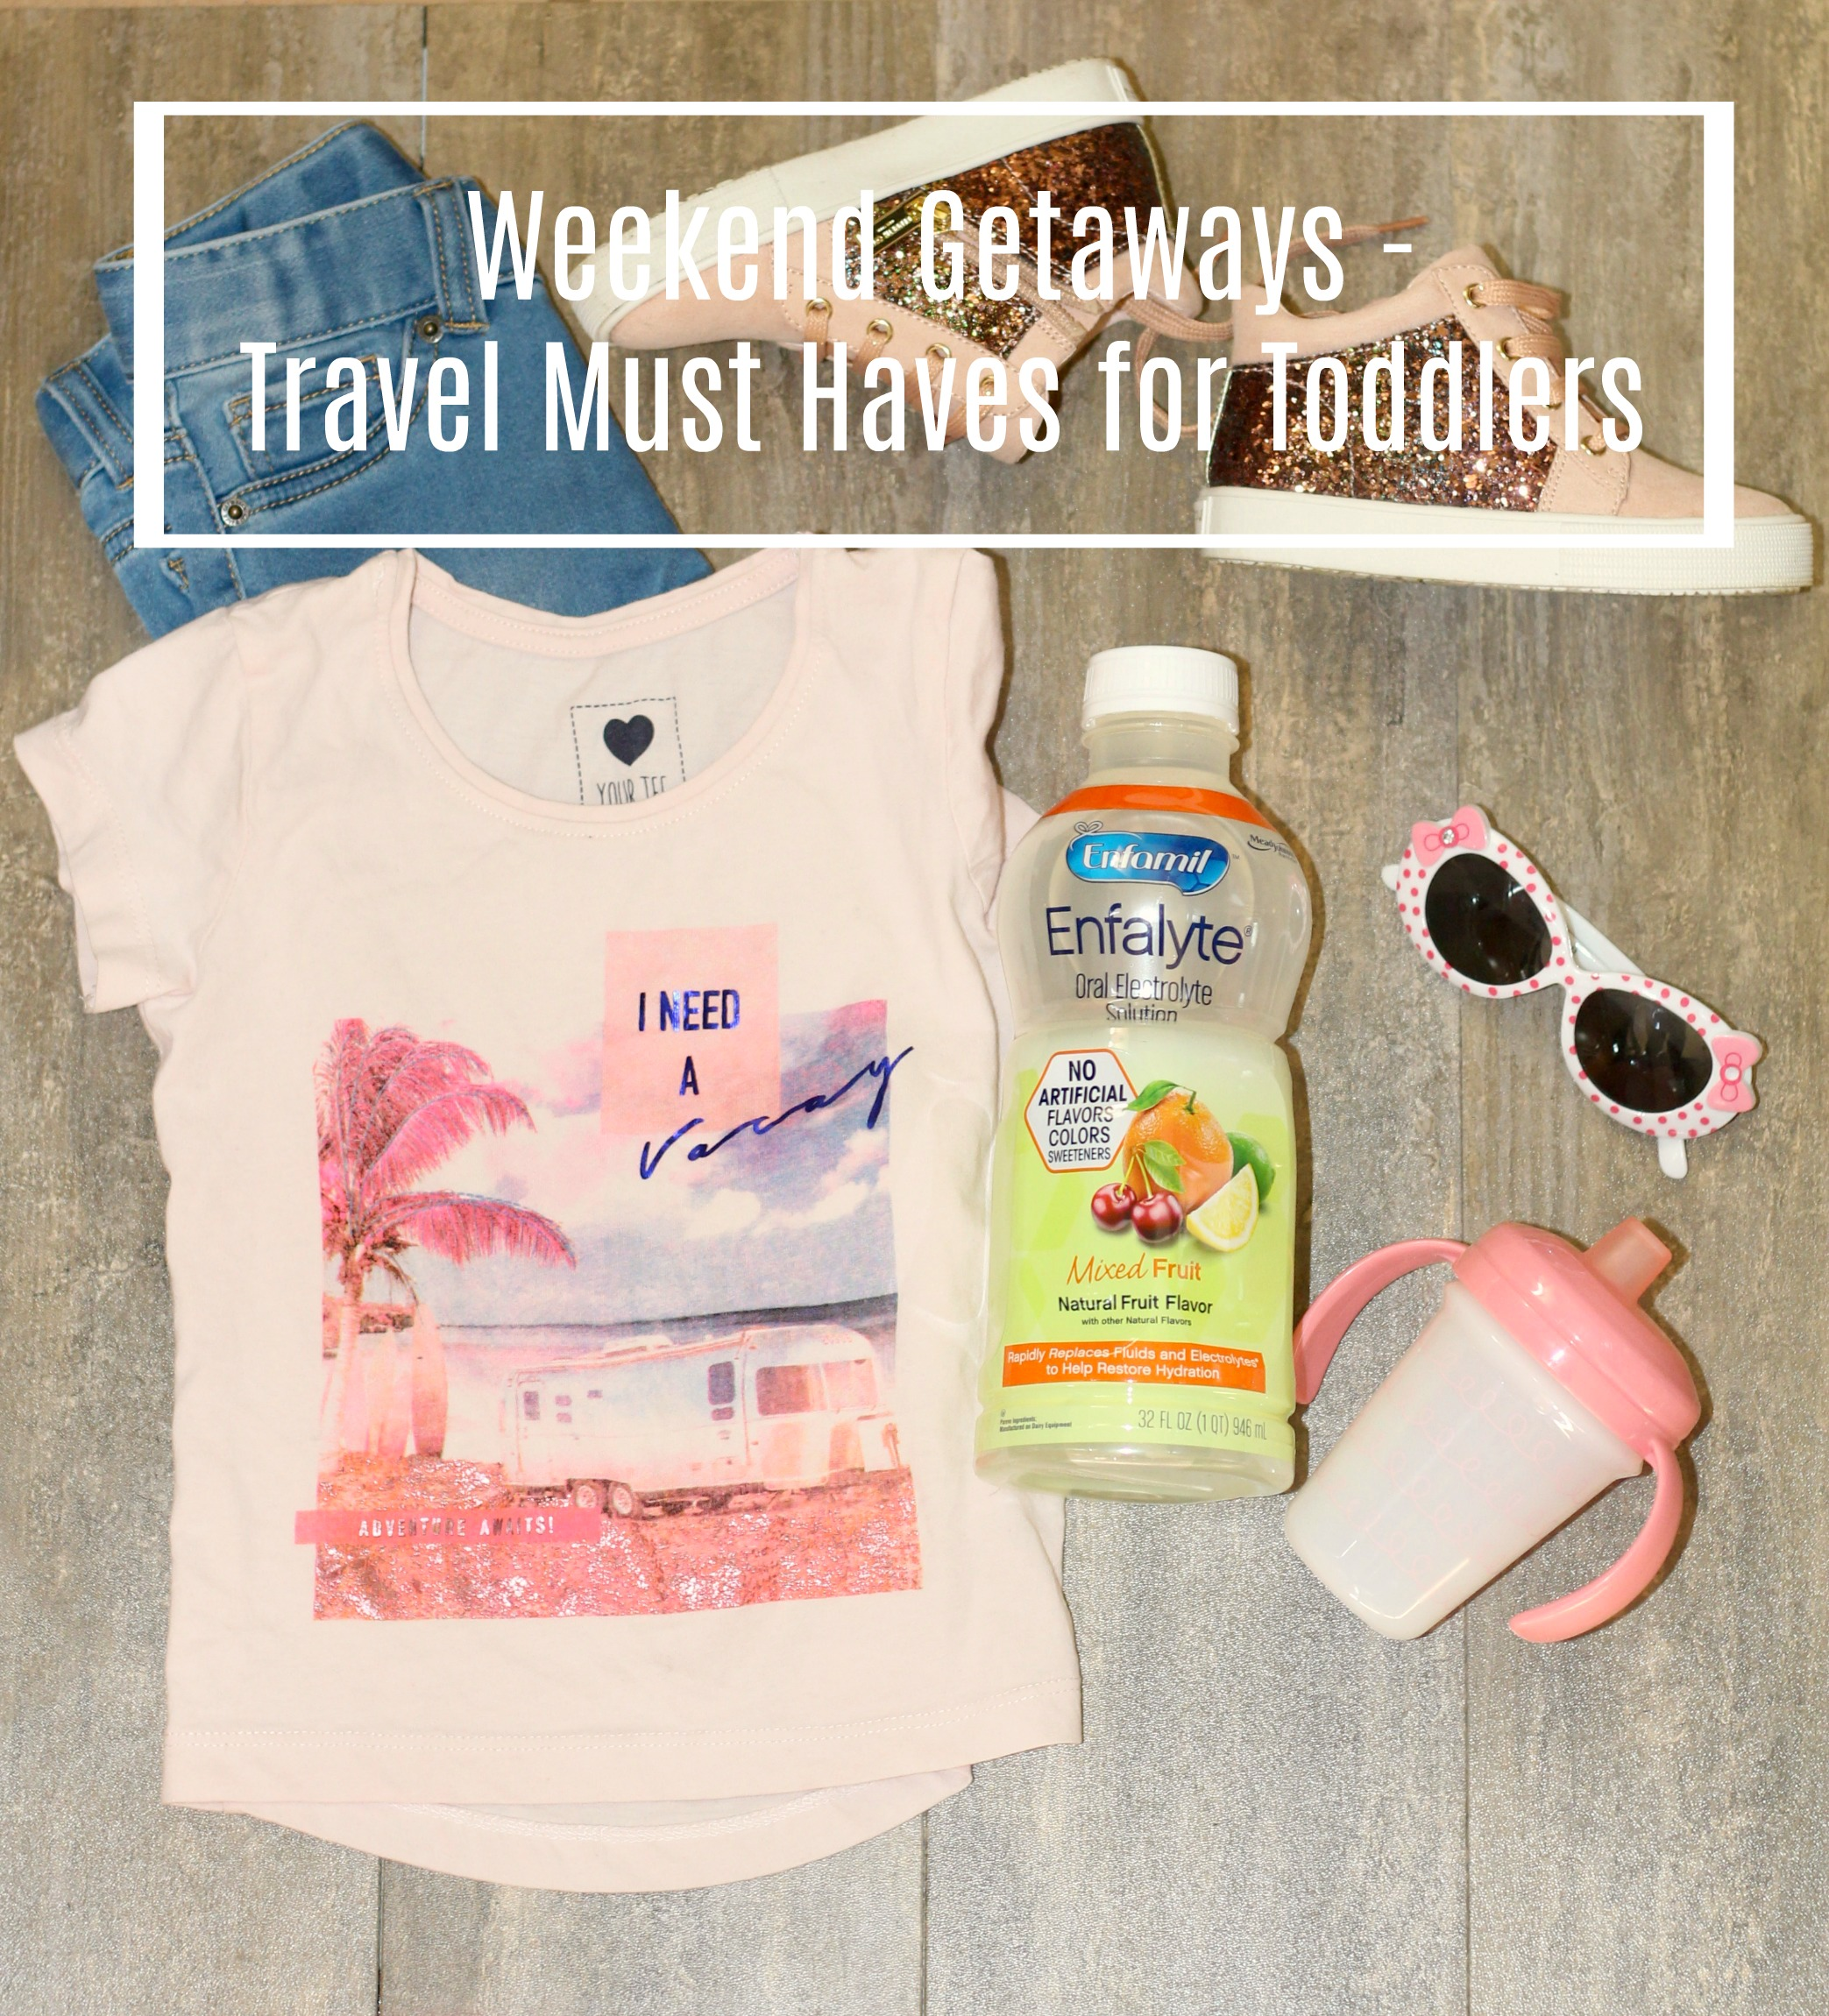 Weekend Getaways - Travel Must Haves for Toddlers